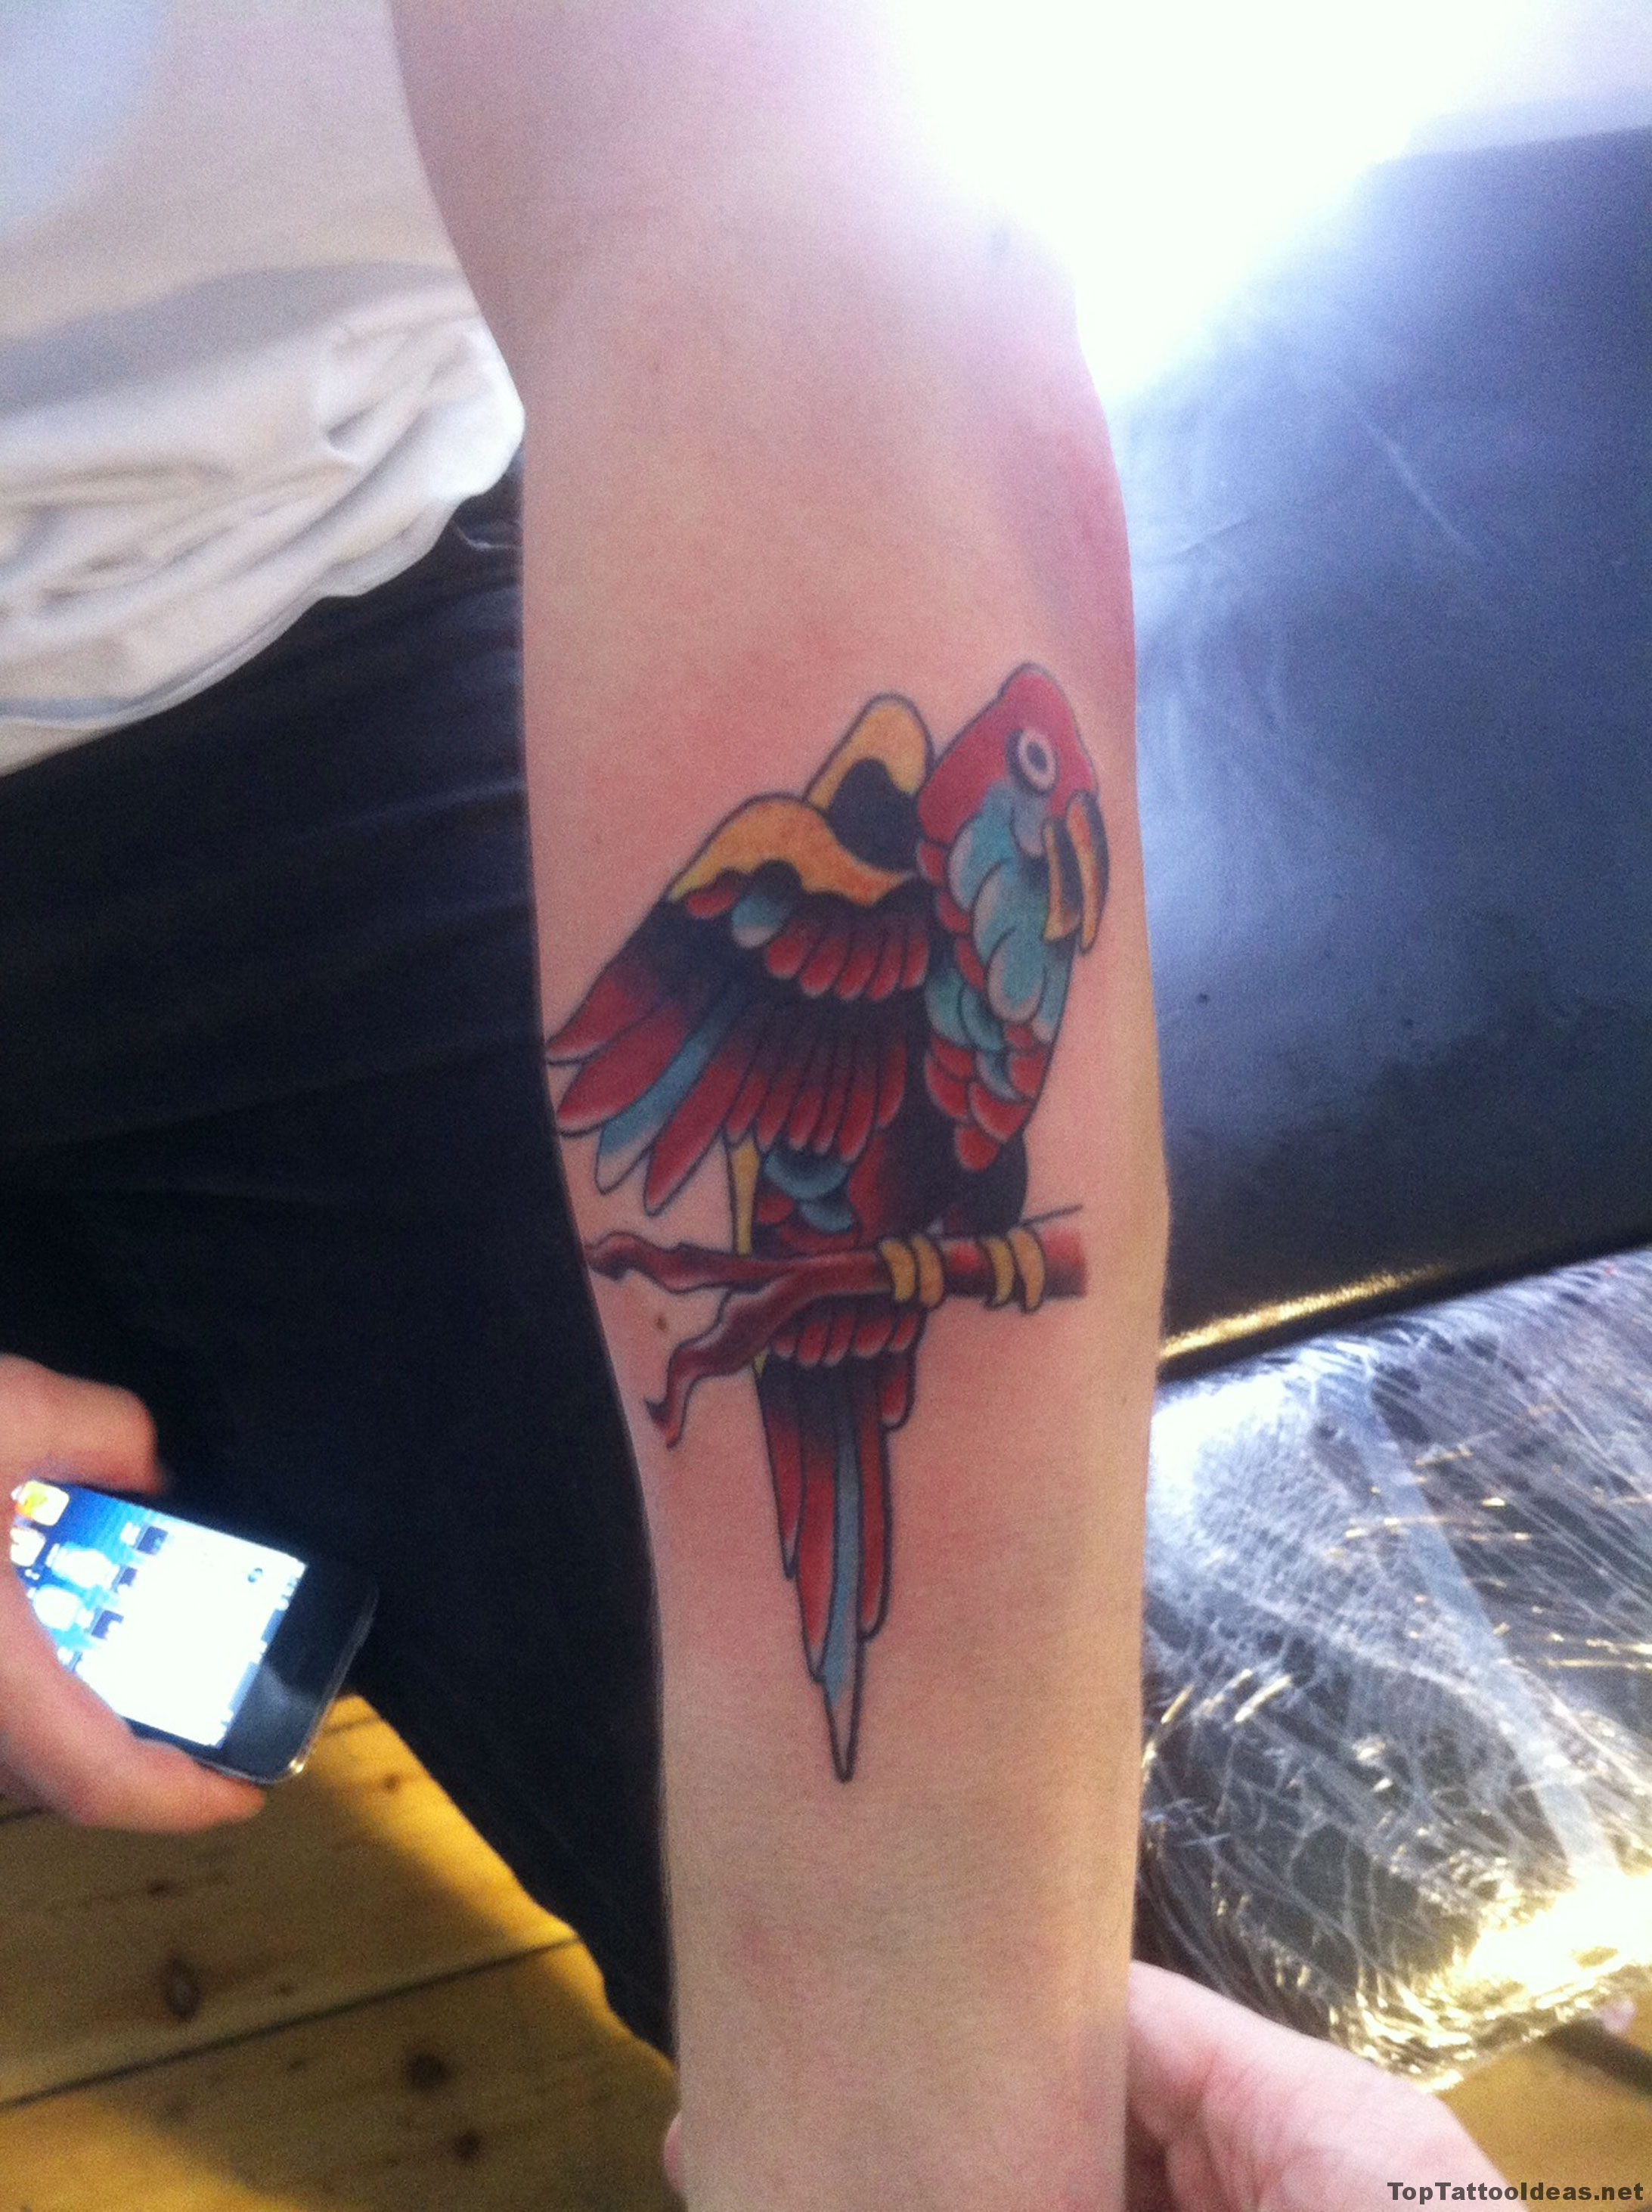 Parrot Arm Tattoo Idea